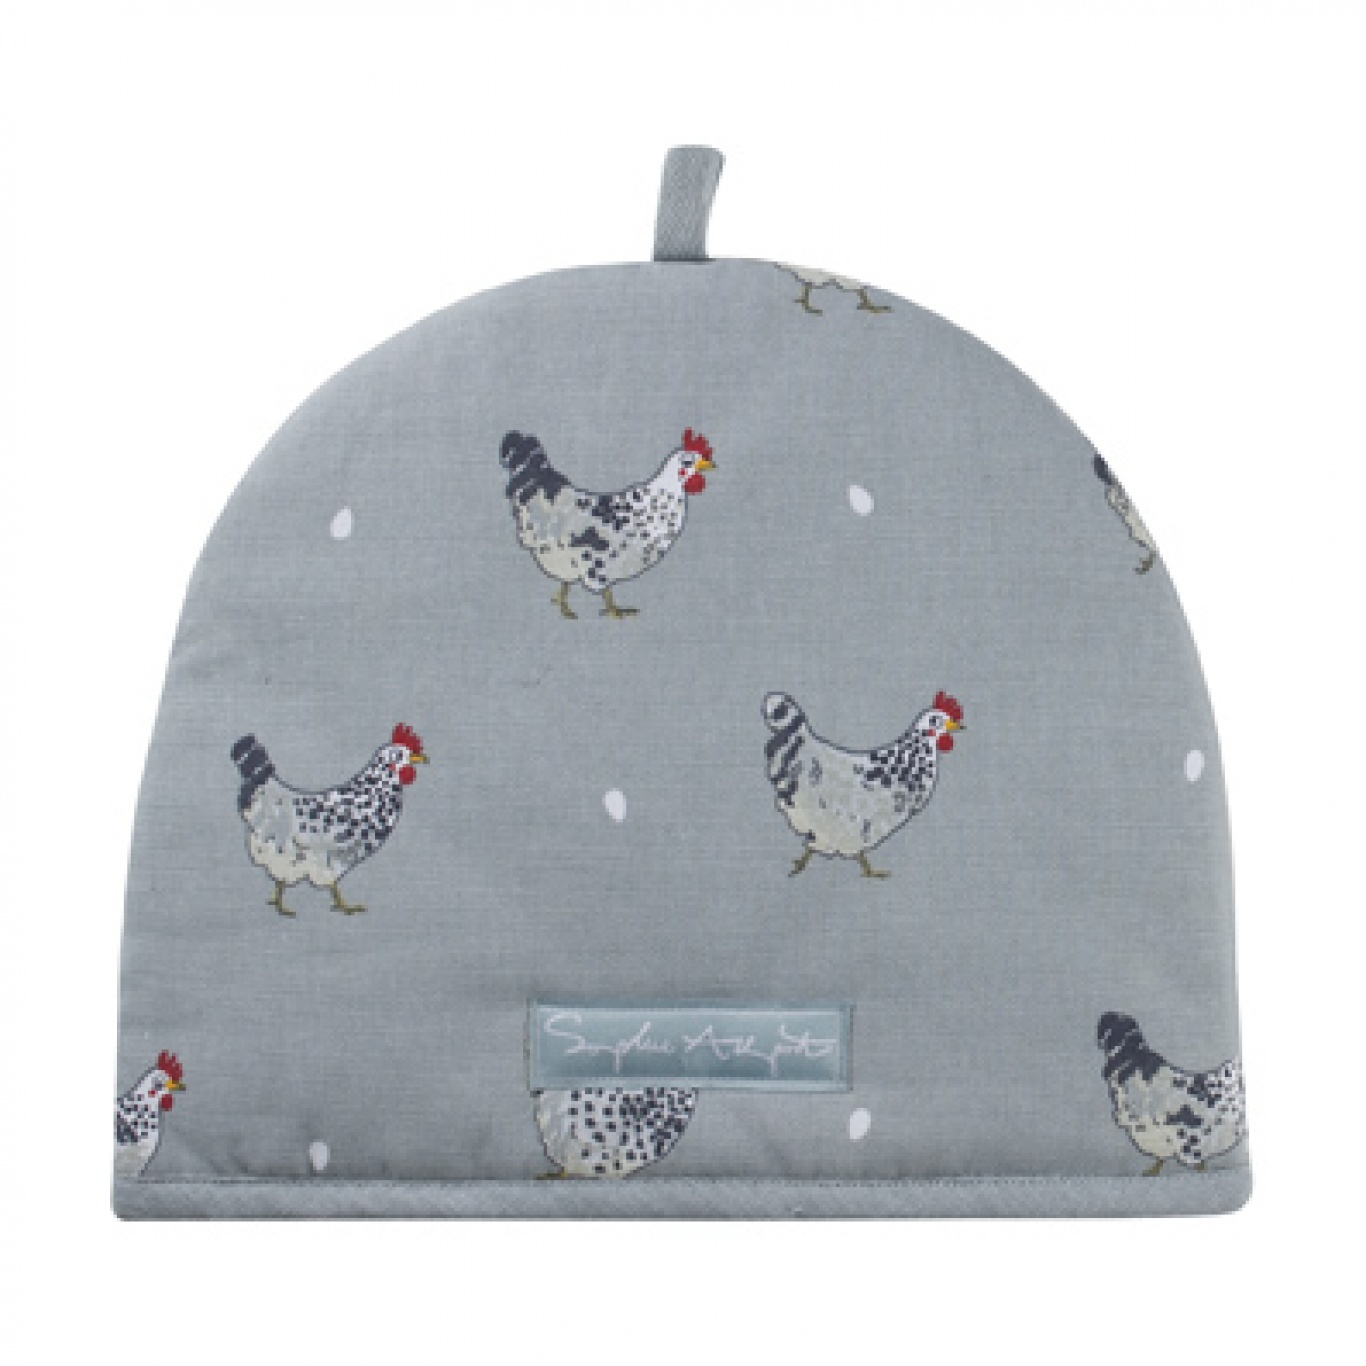 Image of Sophie Allport Chickens Tea Cosy